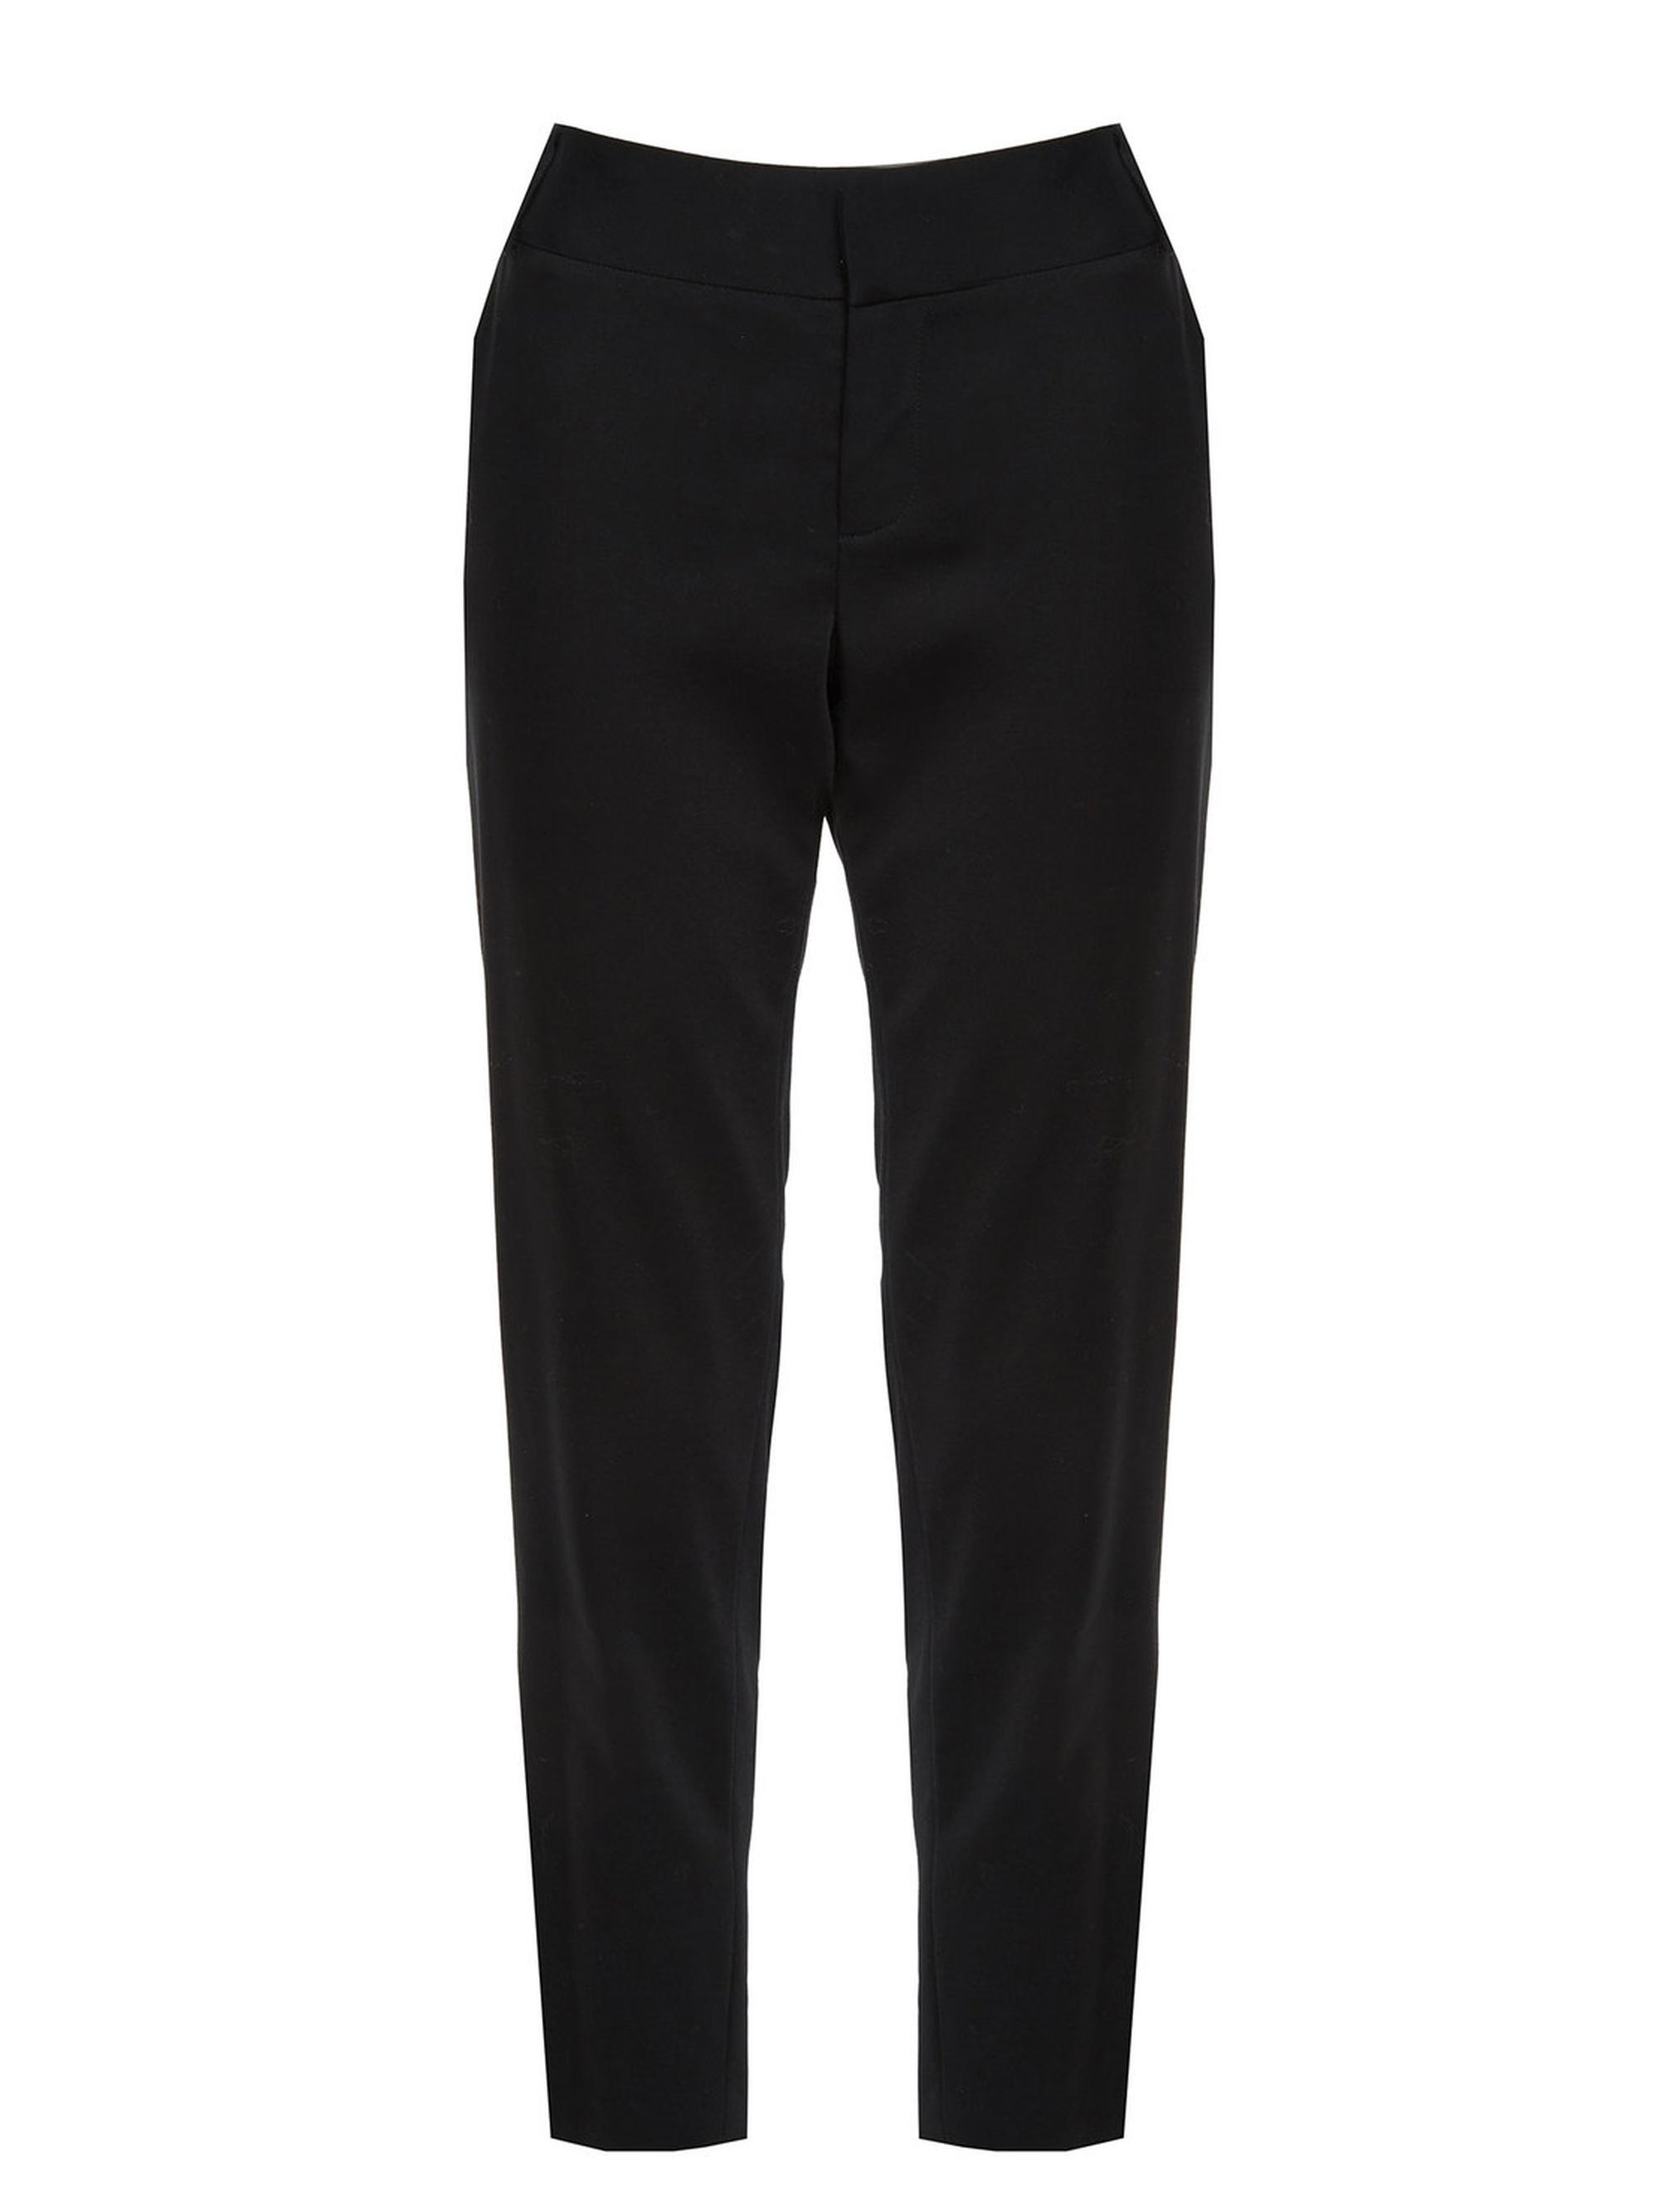 STACEY SLIM TROUSER 5